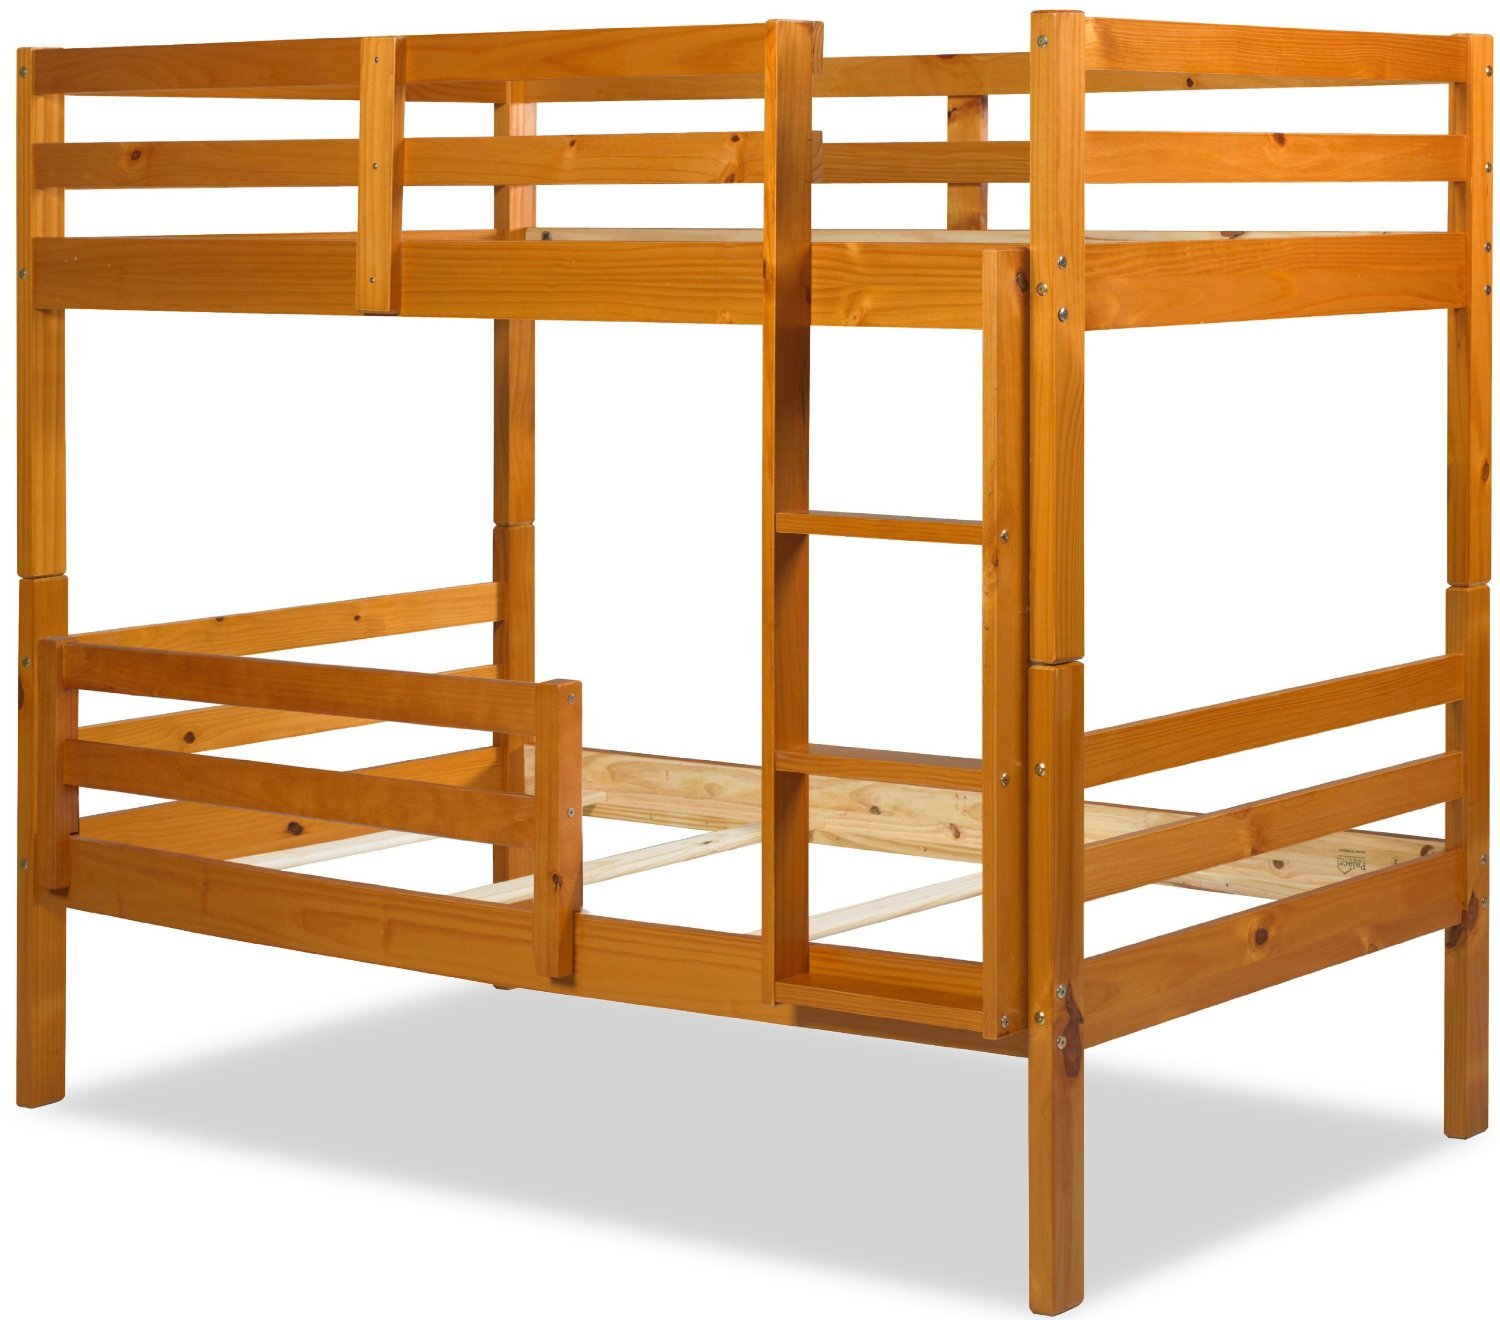 Wonderful image of Home & Garden > Furniture > Beds & Mattresses > Beds & B  with #B05402 color and 1500x1320 pixels